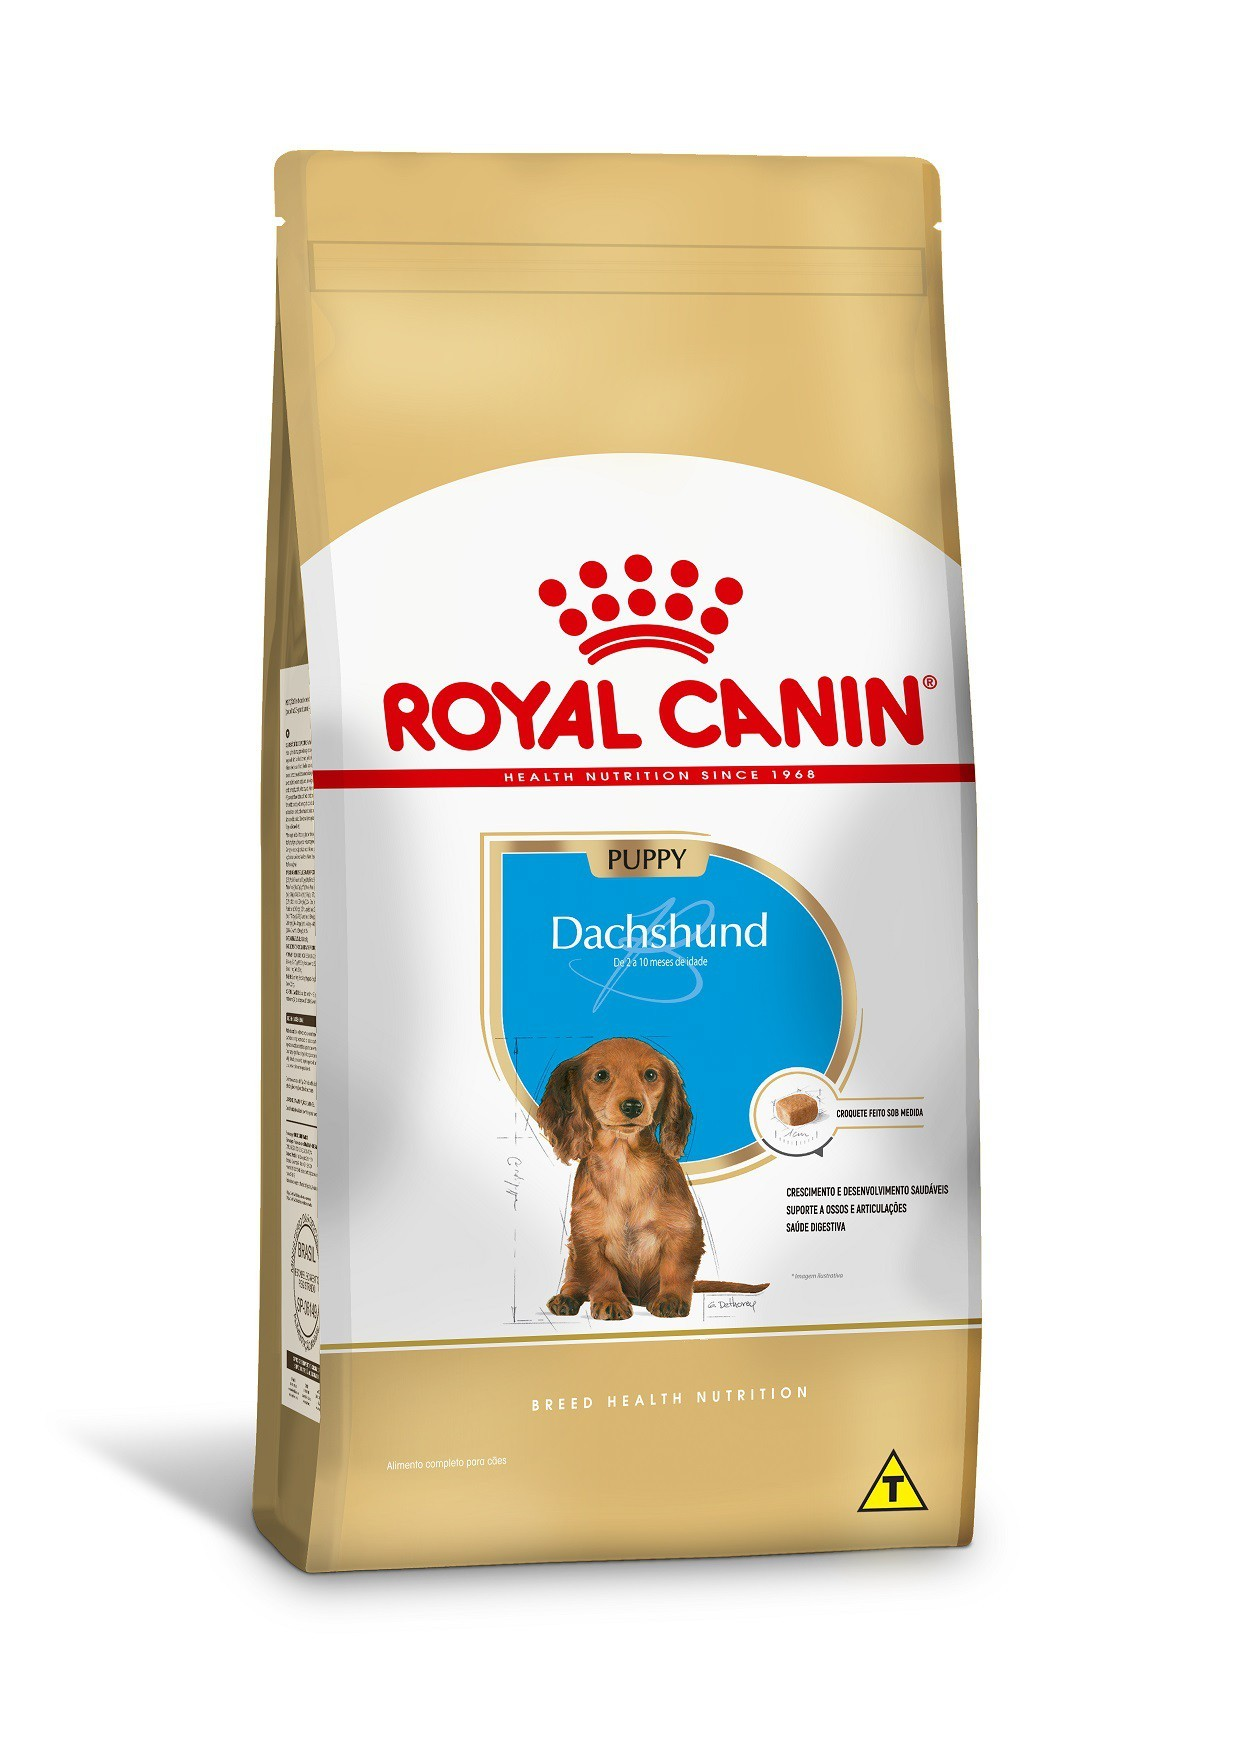 ROYAL CANIN DACHSHUND PUPPY 2,5 Kg